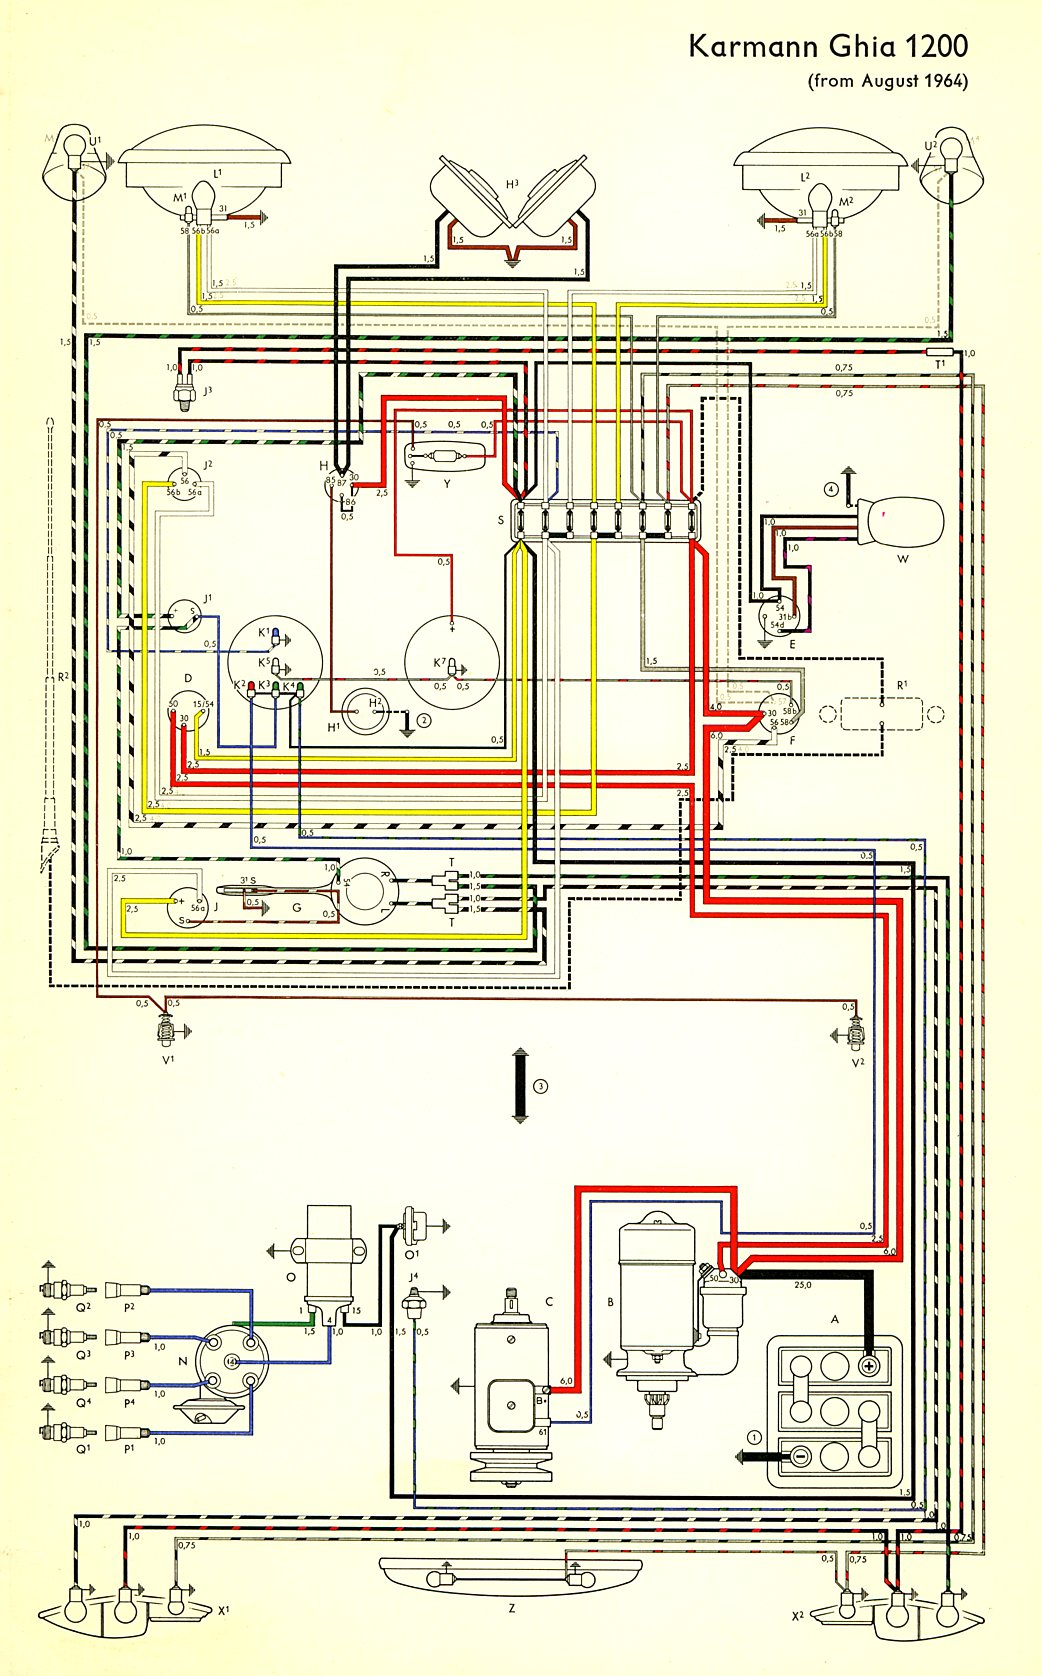 thesamba com karmann ghia wiring diagrams rh thesamba com Subaru Legacy Wiring-Diagram 1974 VW Beetle Wiring Diagram